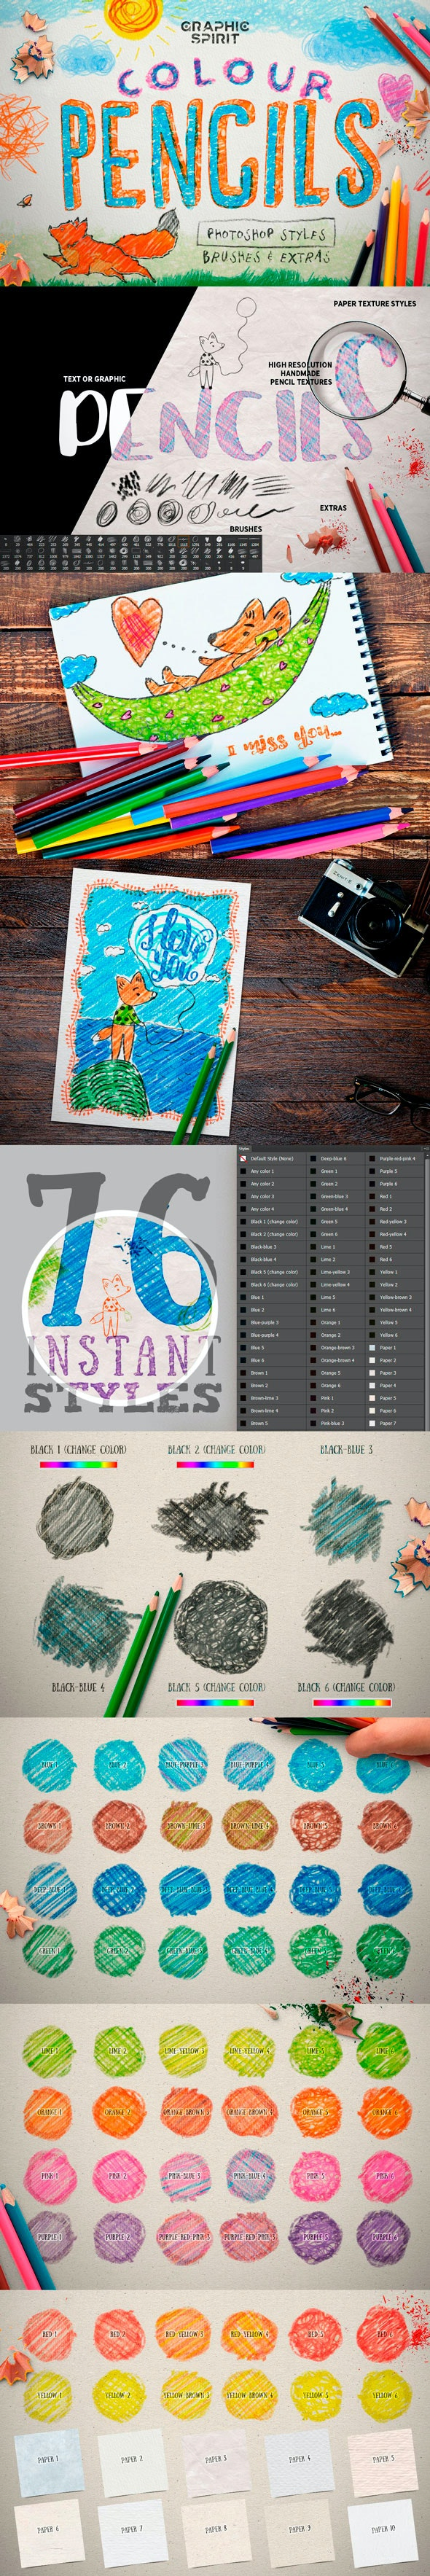 Color Pencil Box Photoshop Styles - Photoshop Add-ons